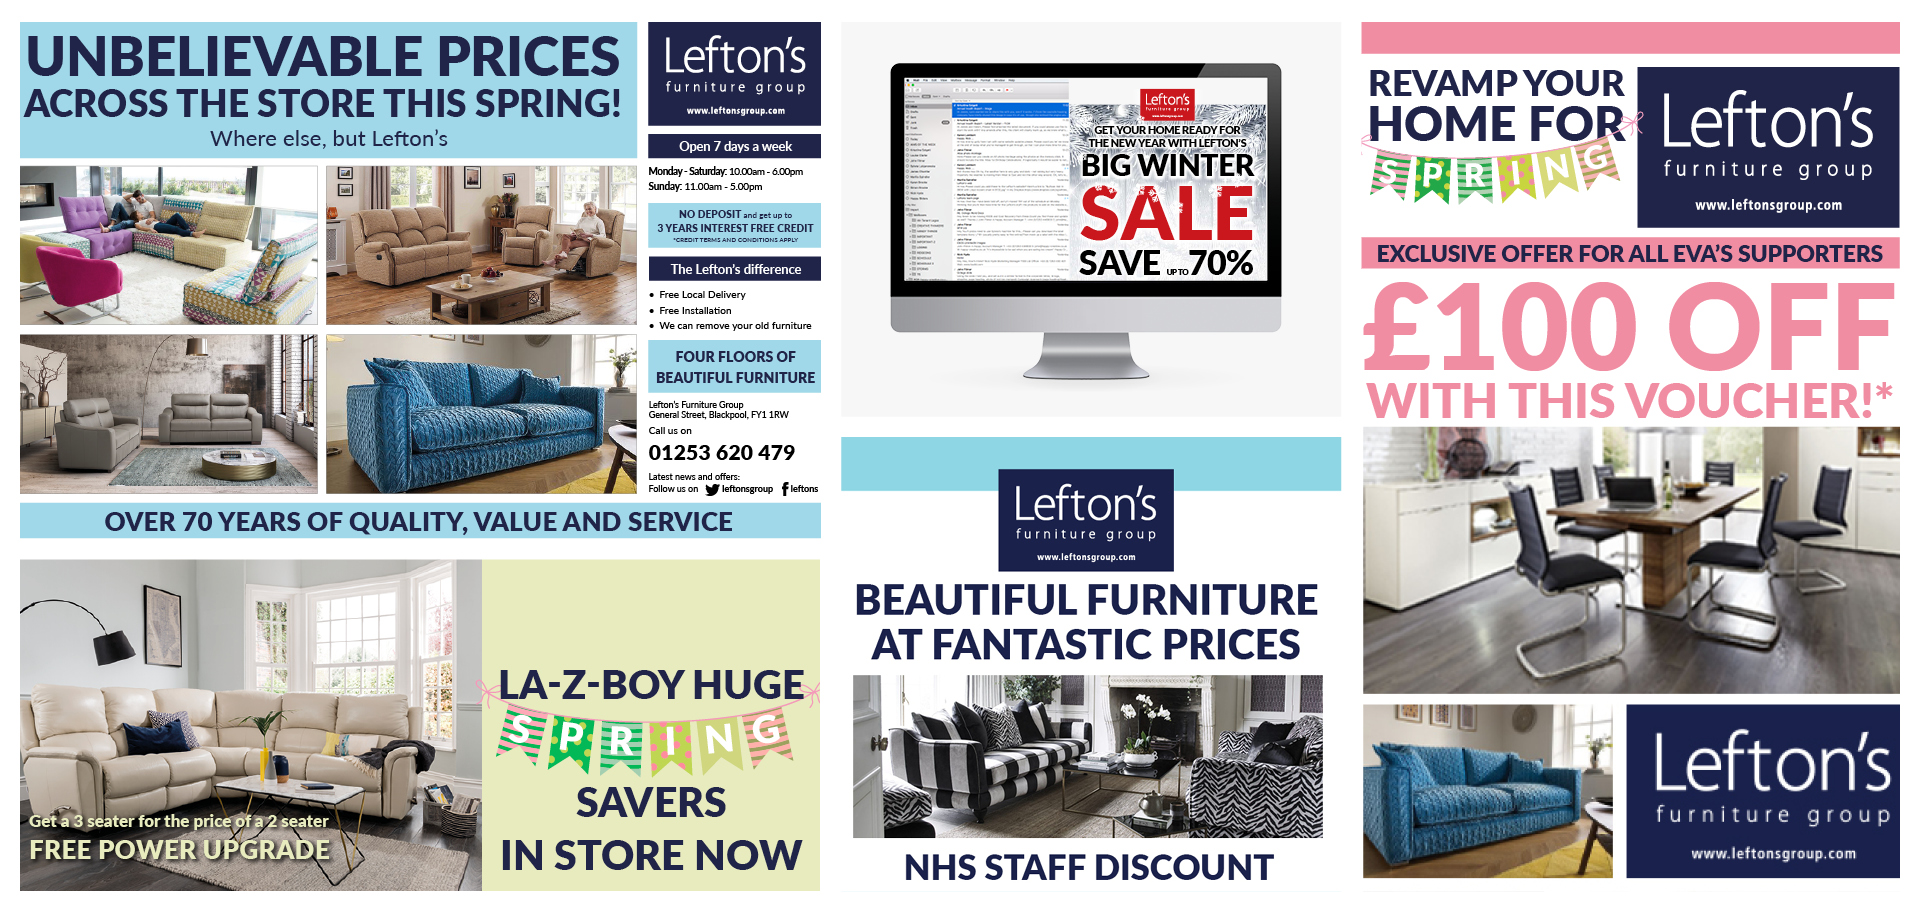 Lefton's Furniture branding materials